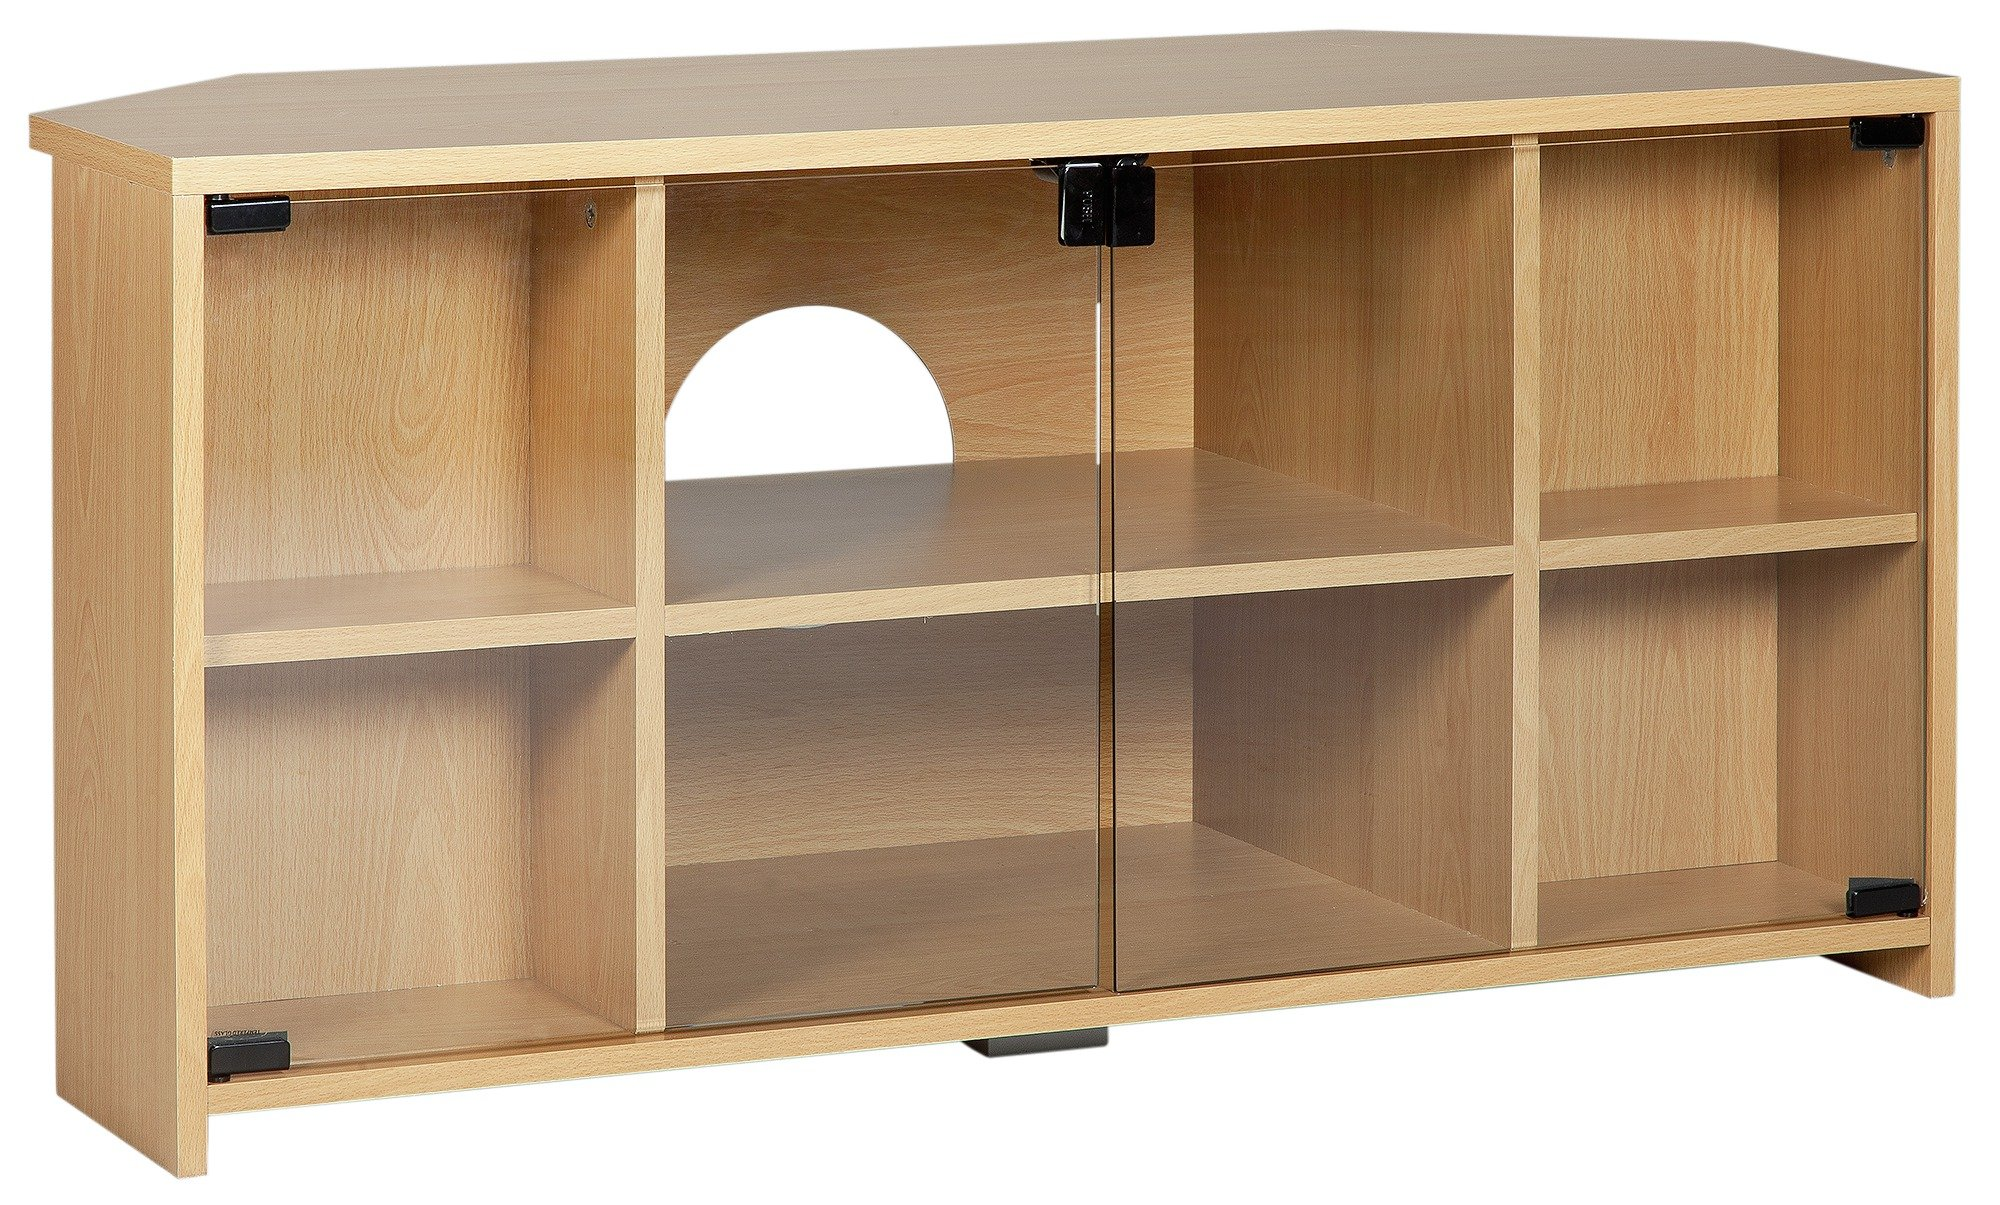 Sale On Argos Home Chequer Corner Tv Unit Beech Effect